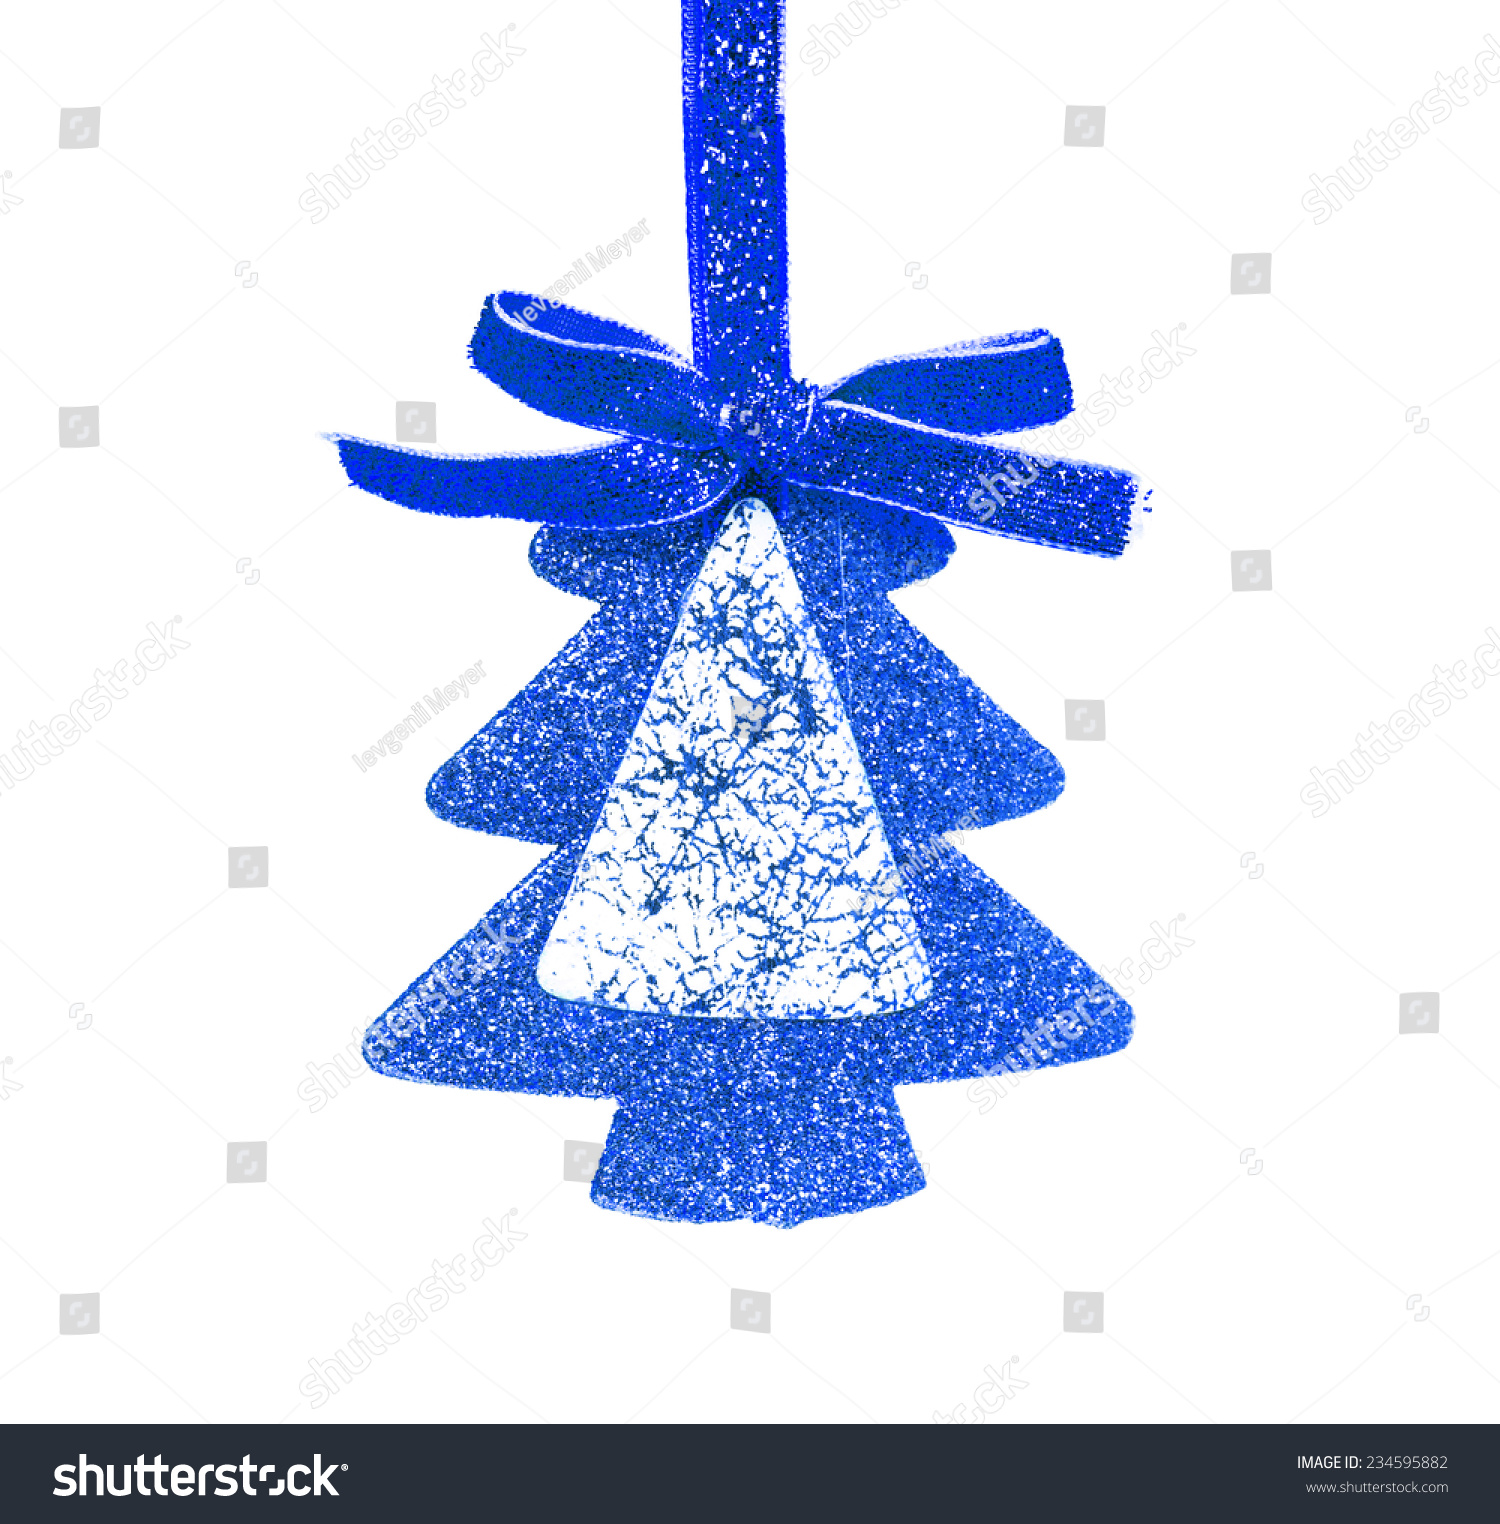 Simple Blue Christmas Tree Isolated On Stock Photo Edit Now 234595882